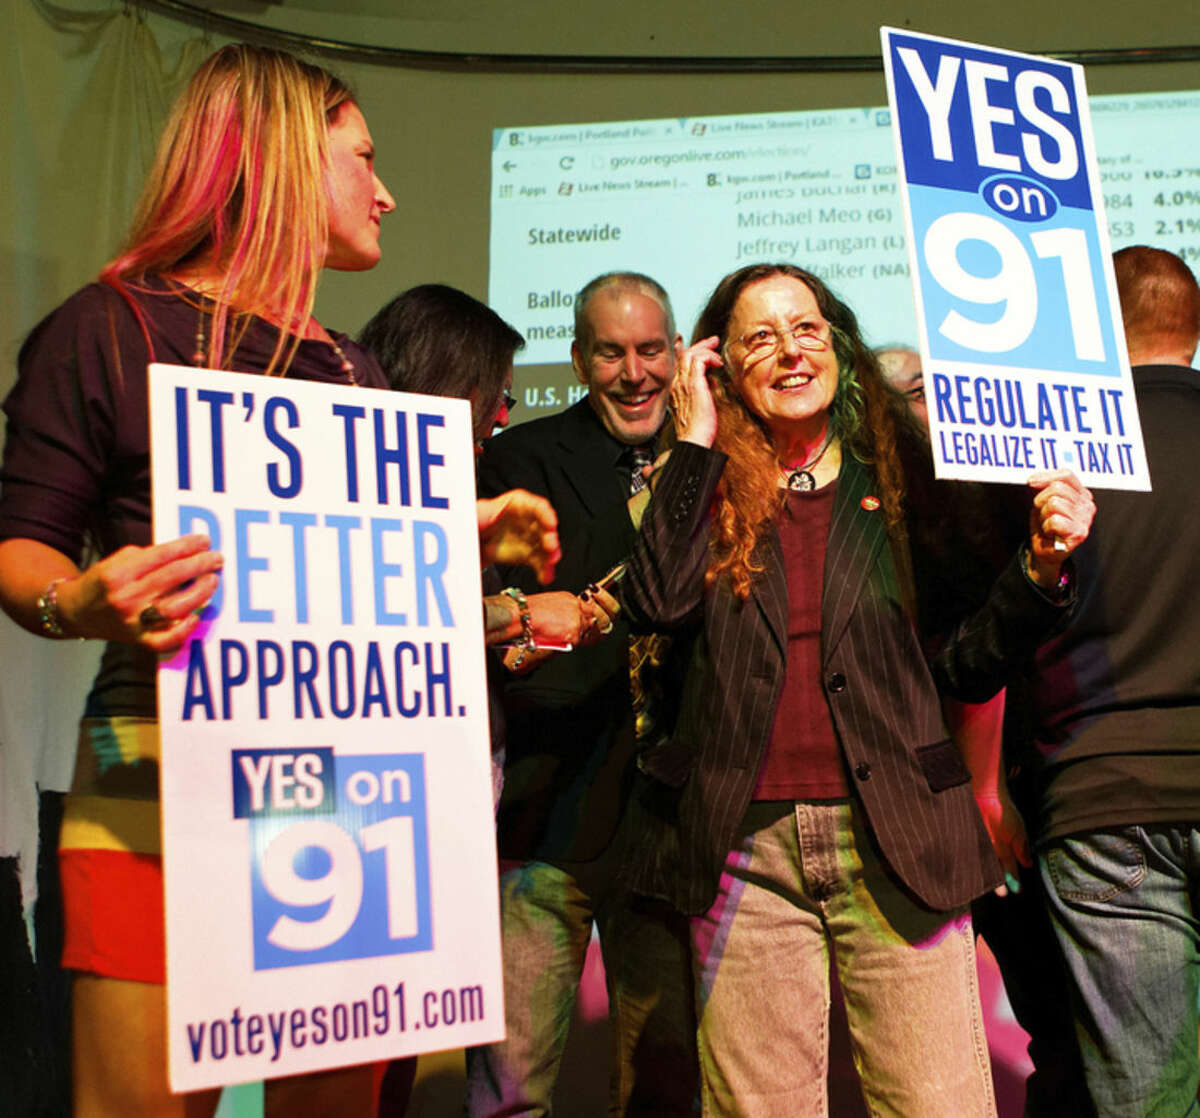 Supporters for the legalization of marijuana celebrate at the Measure 91 party at Holocene night club in Portland, Ore., on Tuesday, Nov. 4, 2014. Oregon voters legalized recreational pot use Tuesday, making the state the third to approve the drug for commercial sales. (AP Photo/The Oregonian, Madeline Stone)